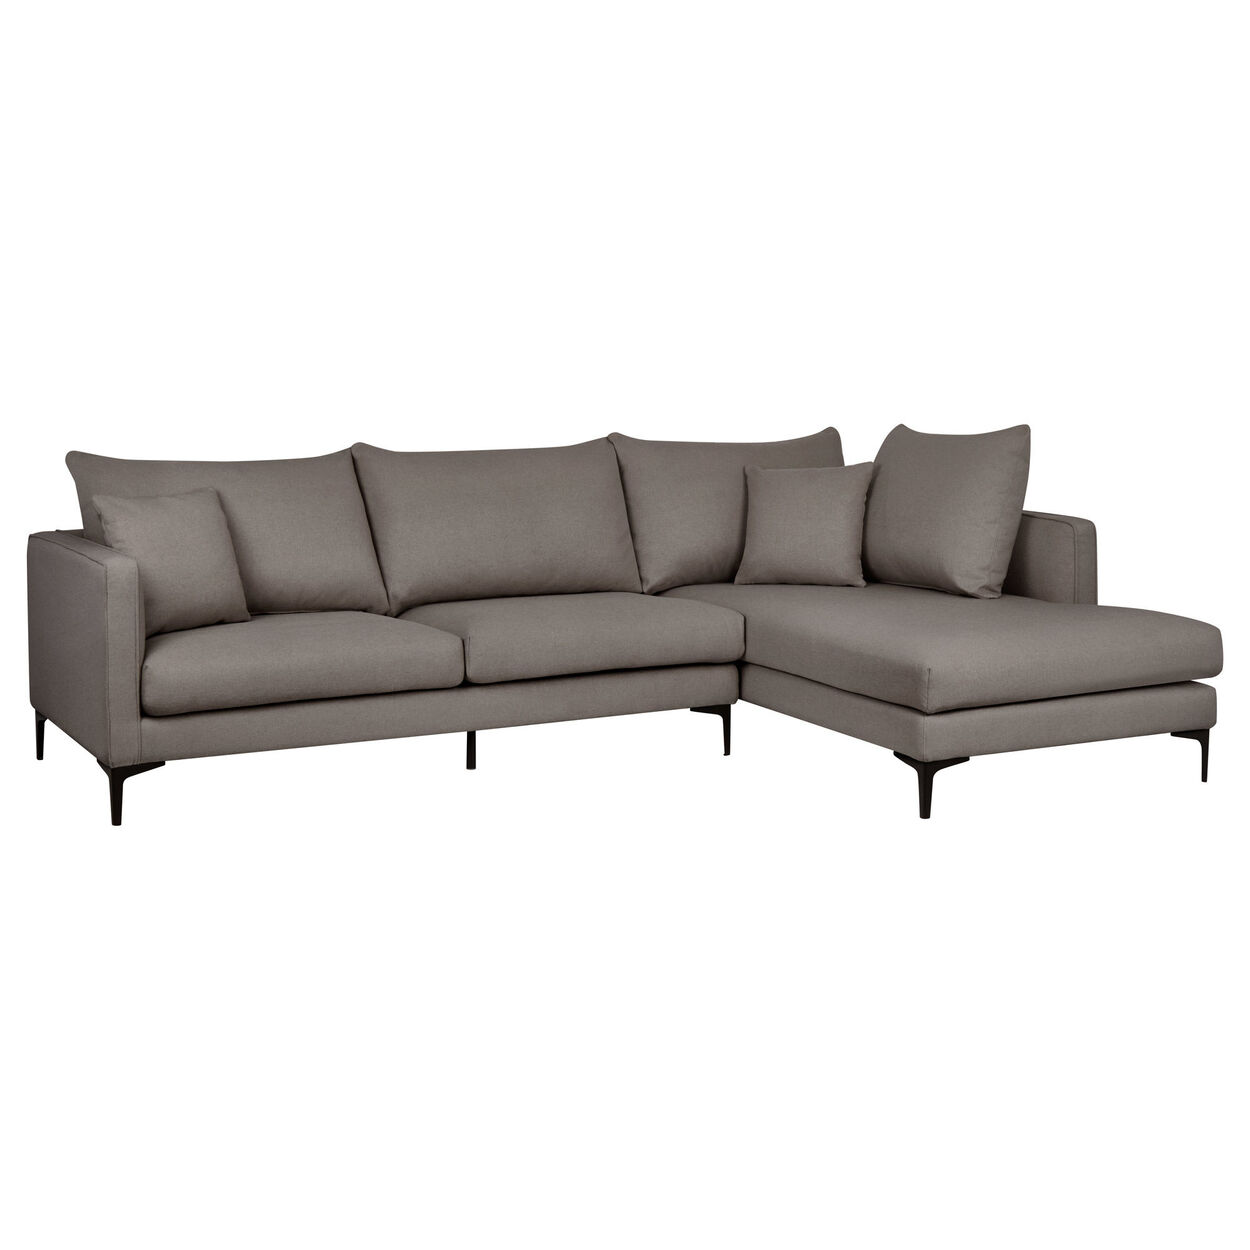 fabric sectional sofas. Fabric Sectional Sofa Sofas